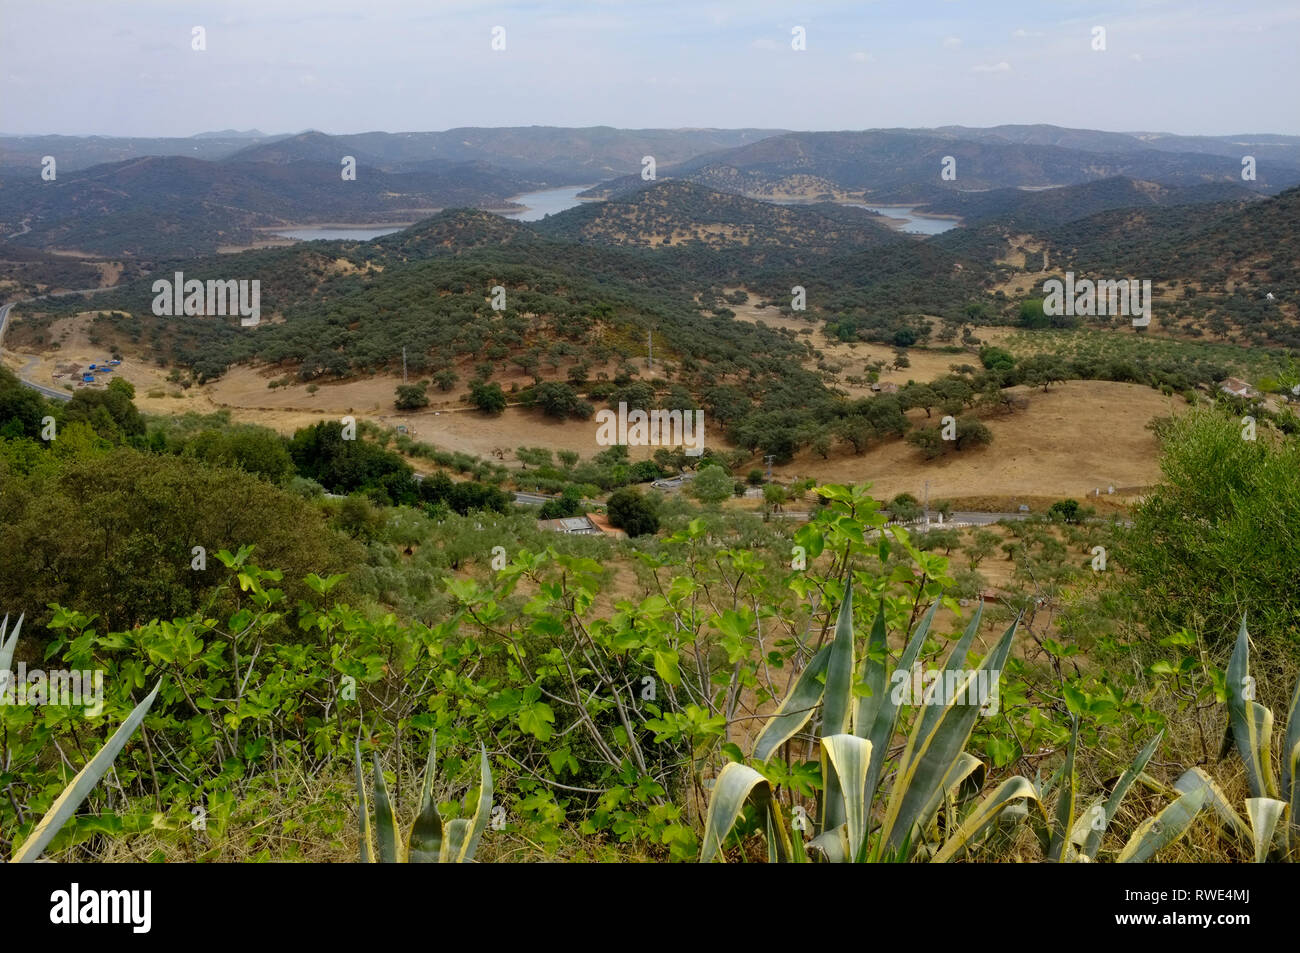 View of Zufre Reservoir and hills in the Sierra de Aracena Natural Park, seen from the hilltop white town of Zufre, Huelva Province, Andalusia, Spain - Stock Image